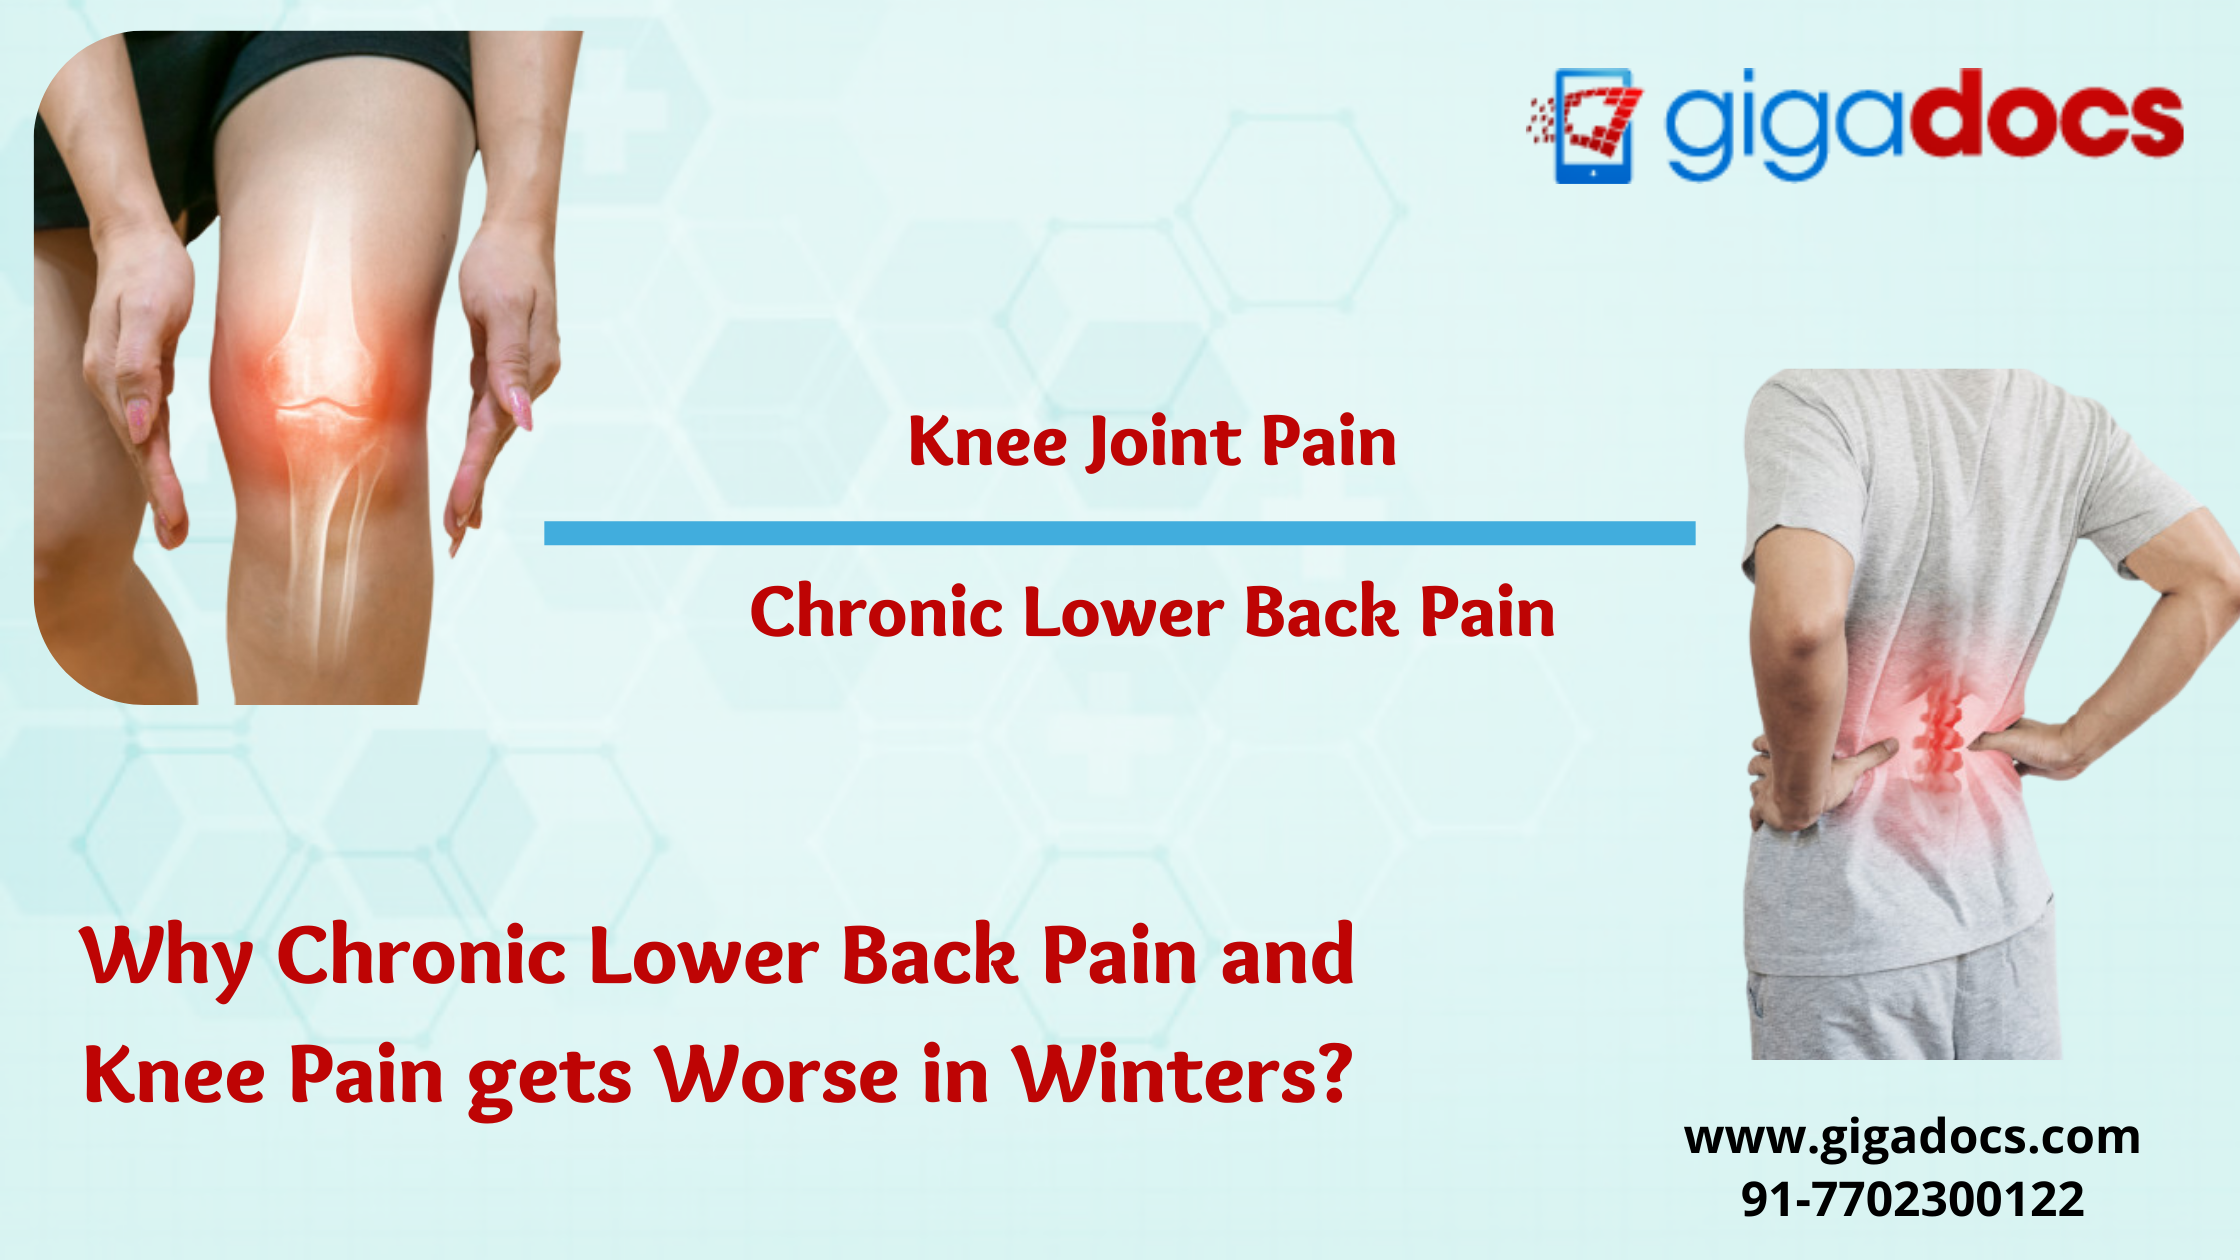 Why Chronic Lower Back Pain and Knee Pain Gets Worse in Winters?